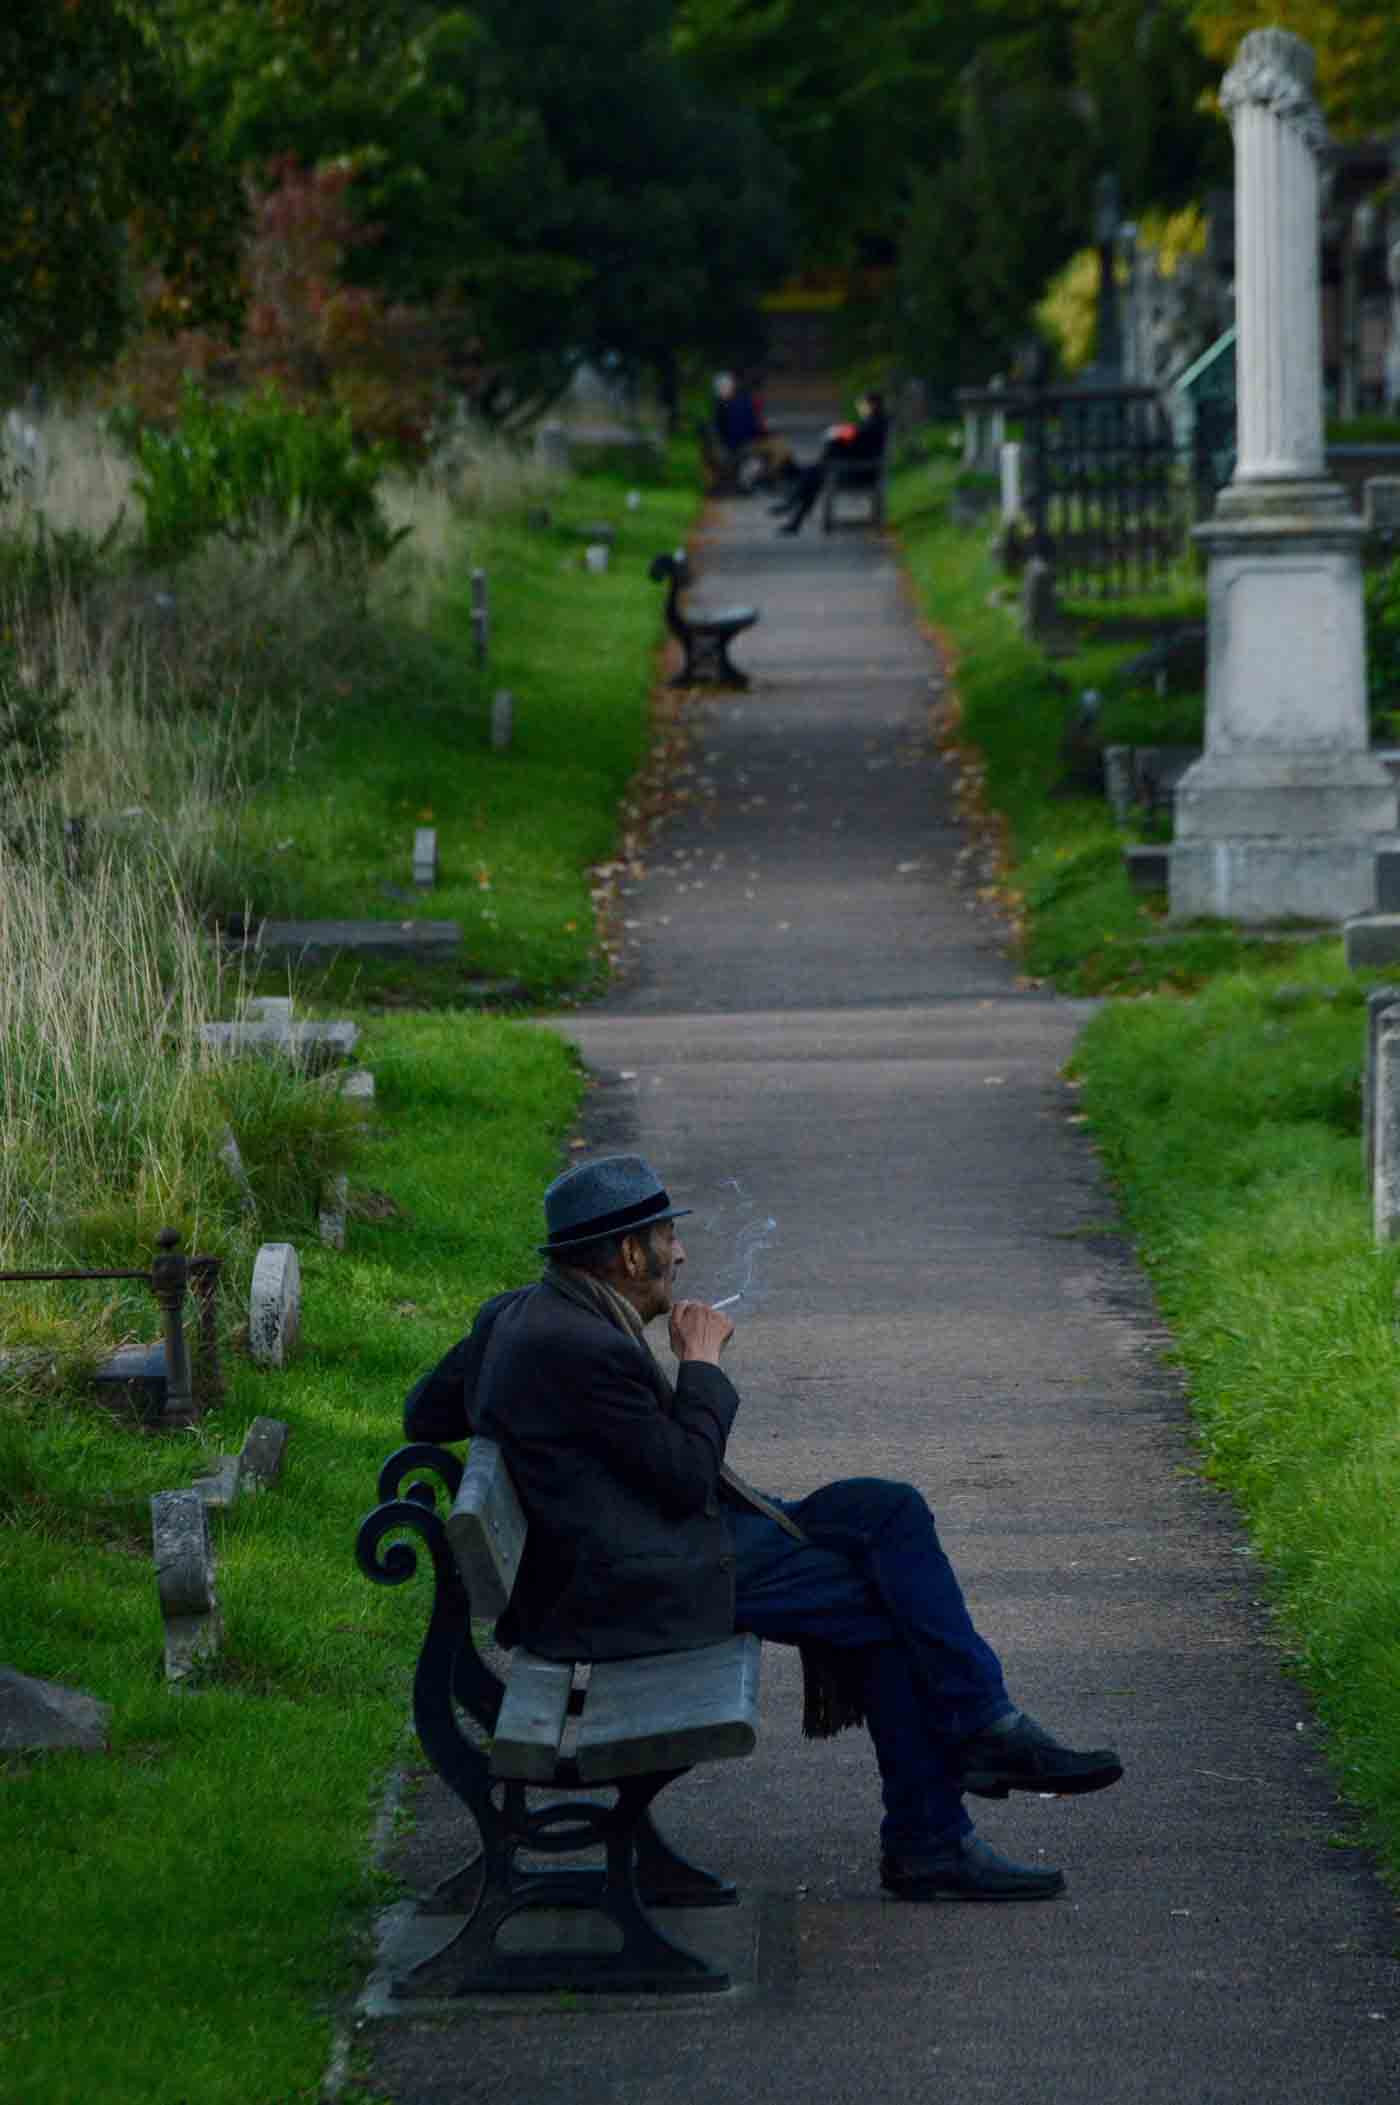 Man smoking a cigarette and sitting on bench on a path at Brompton Cemetery, Fulham, London.